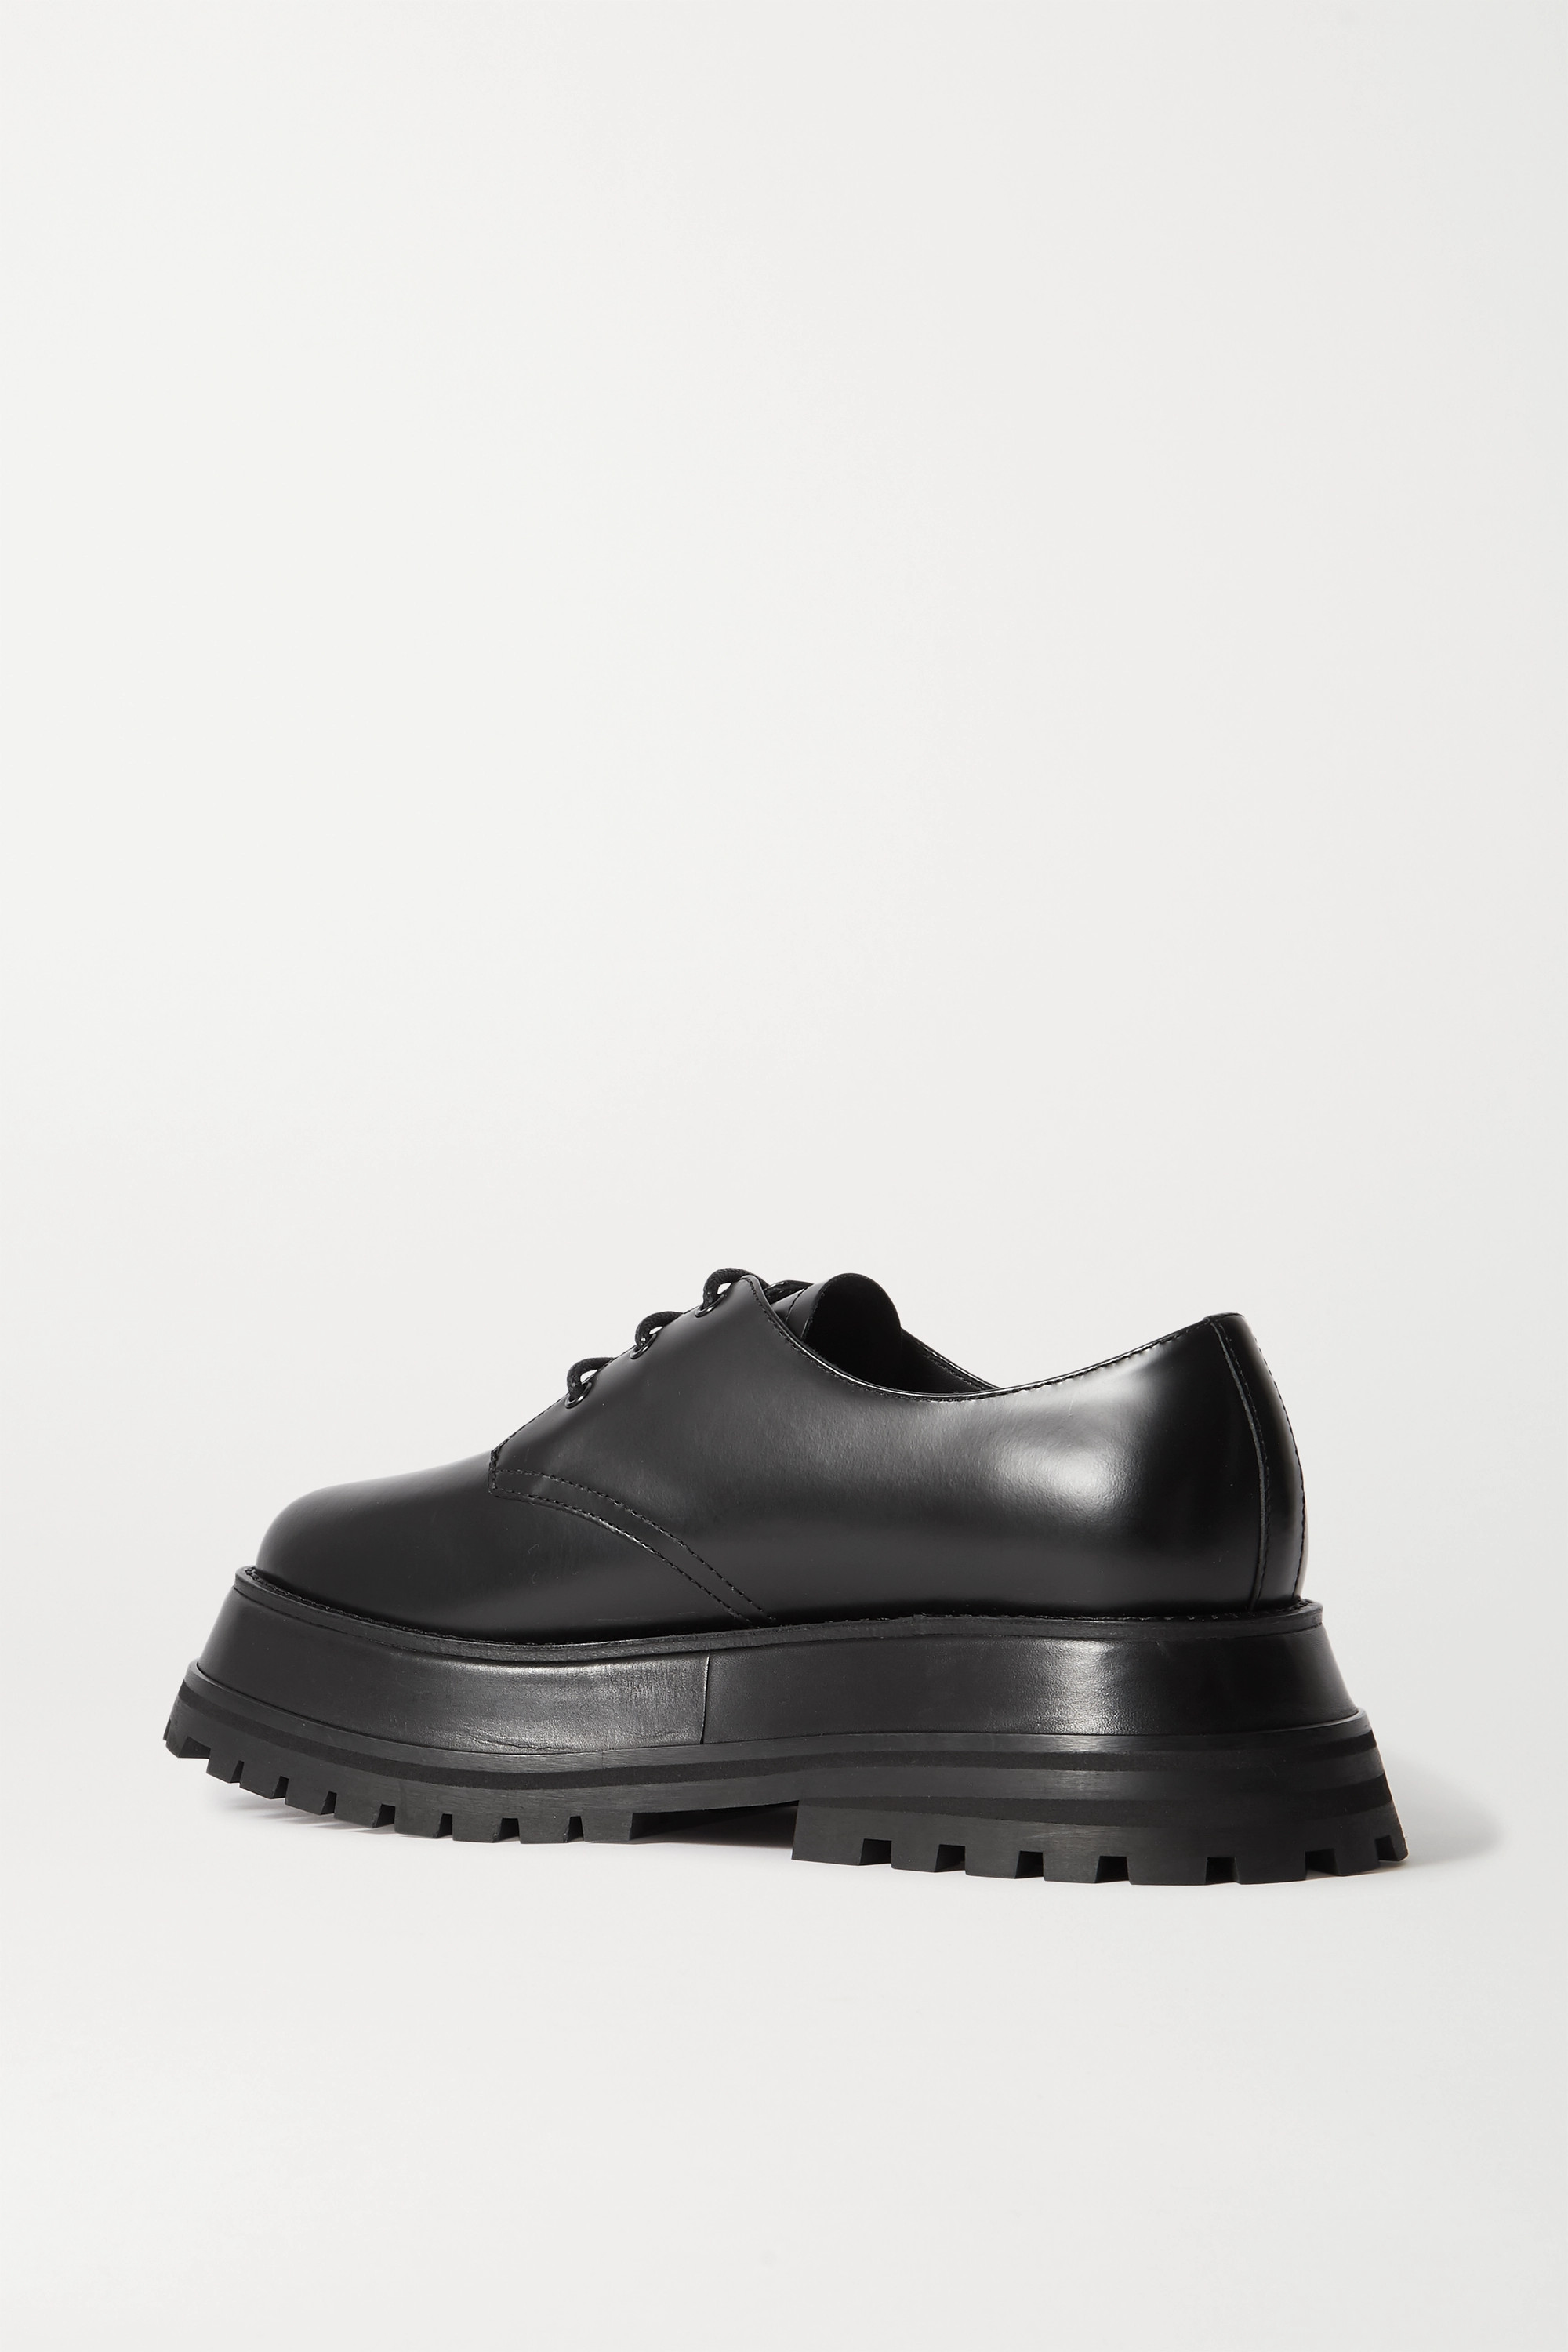 Burberry Guild leather platform brogues